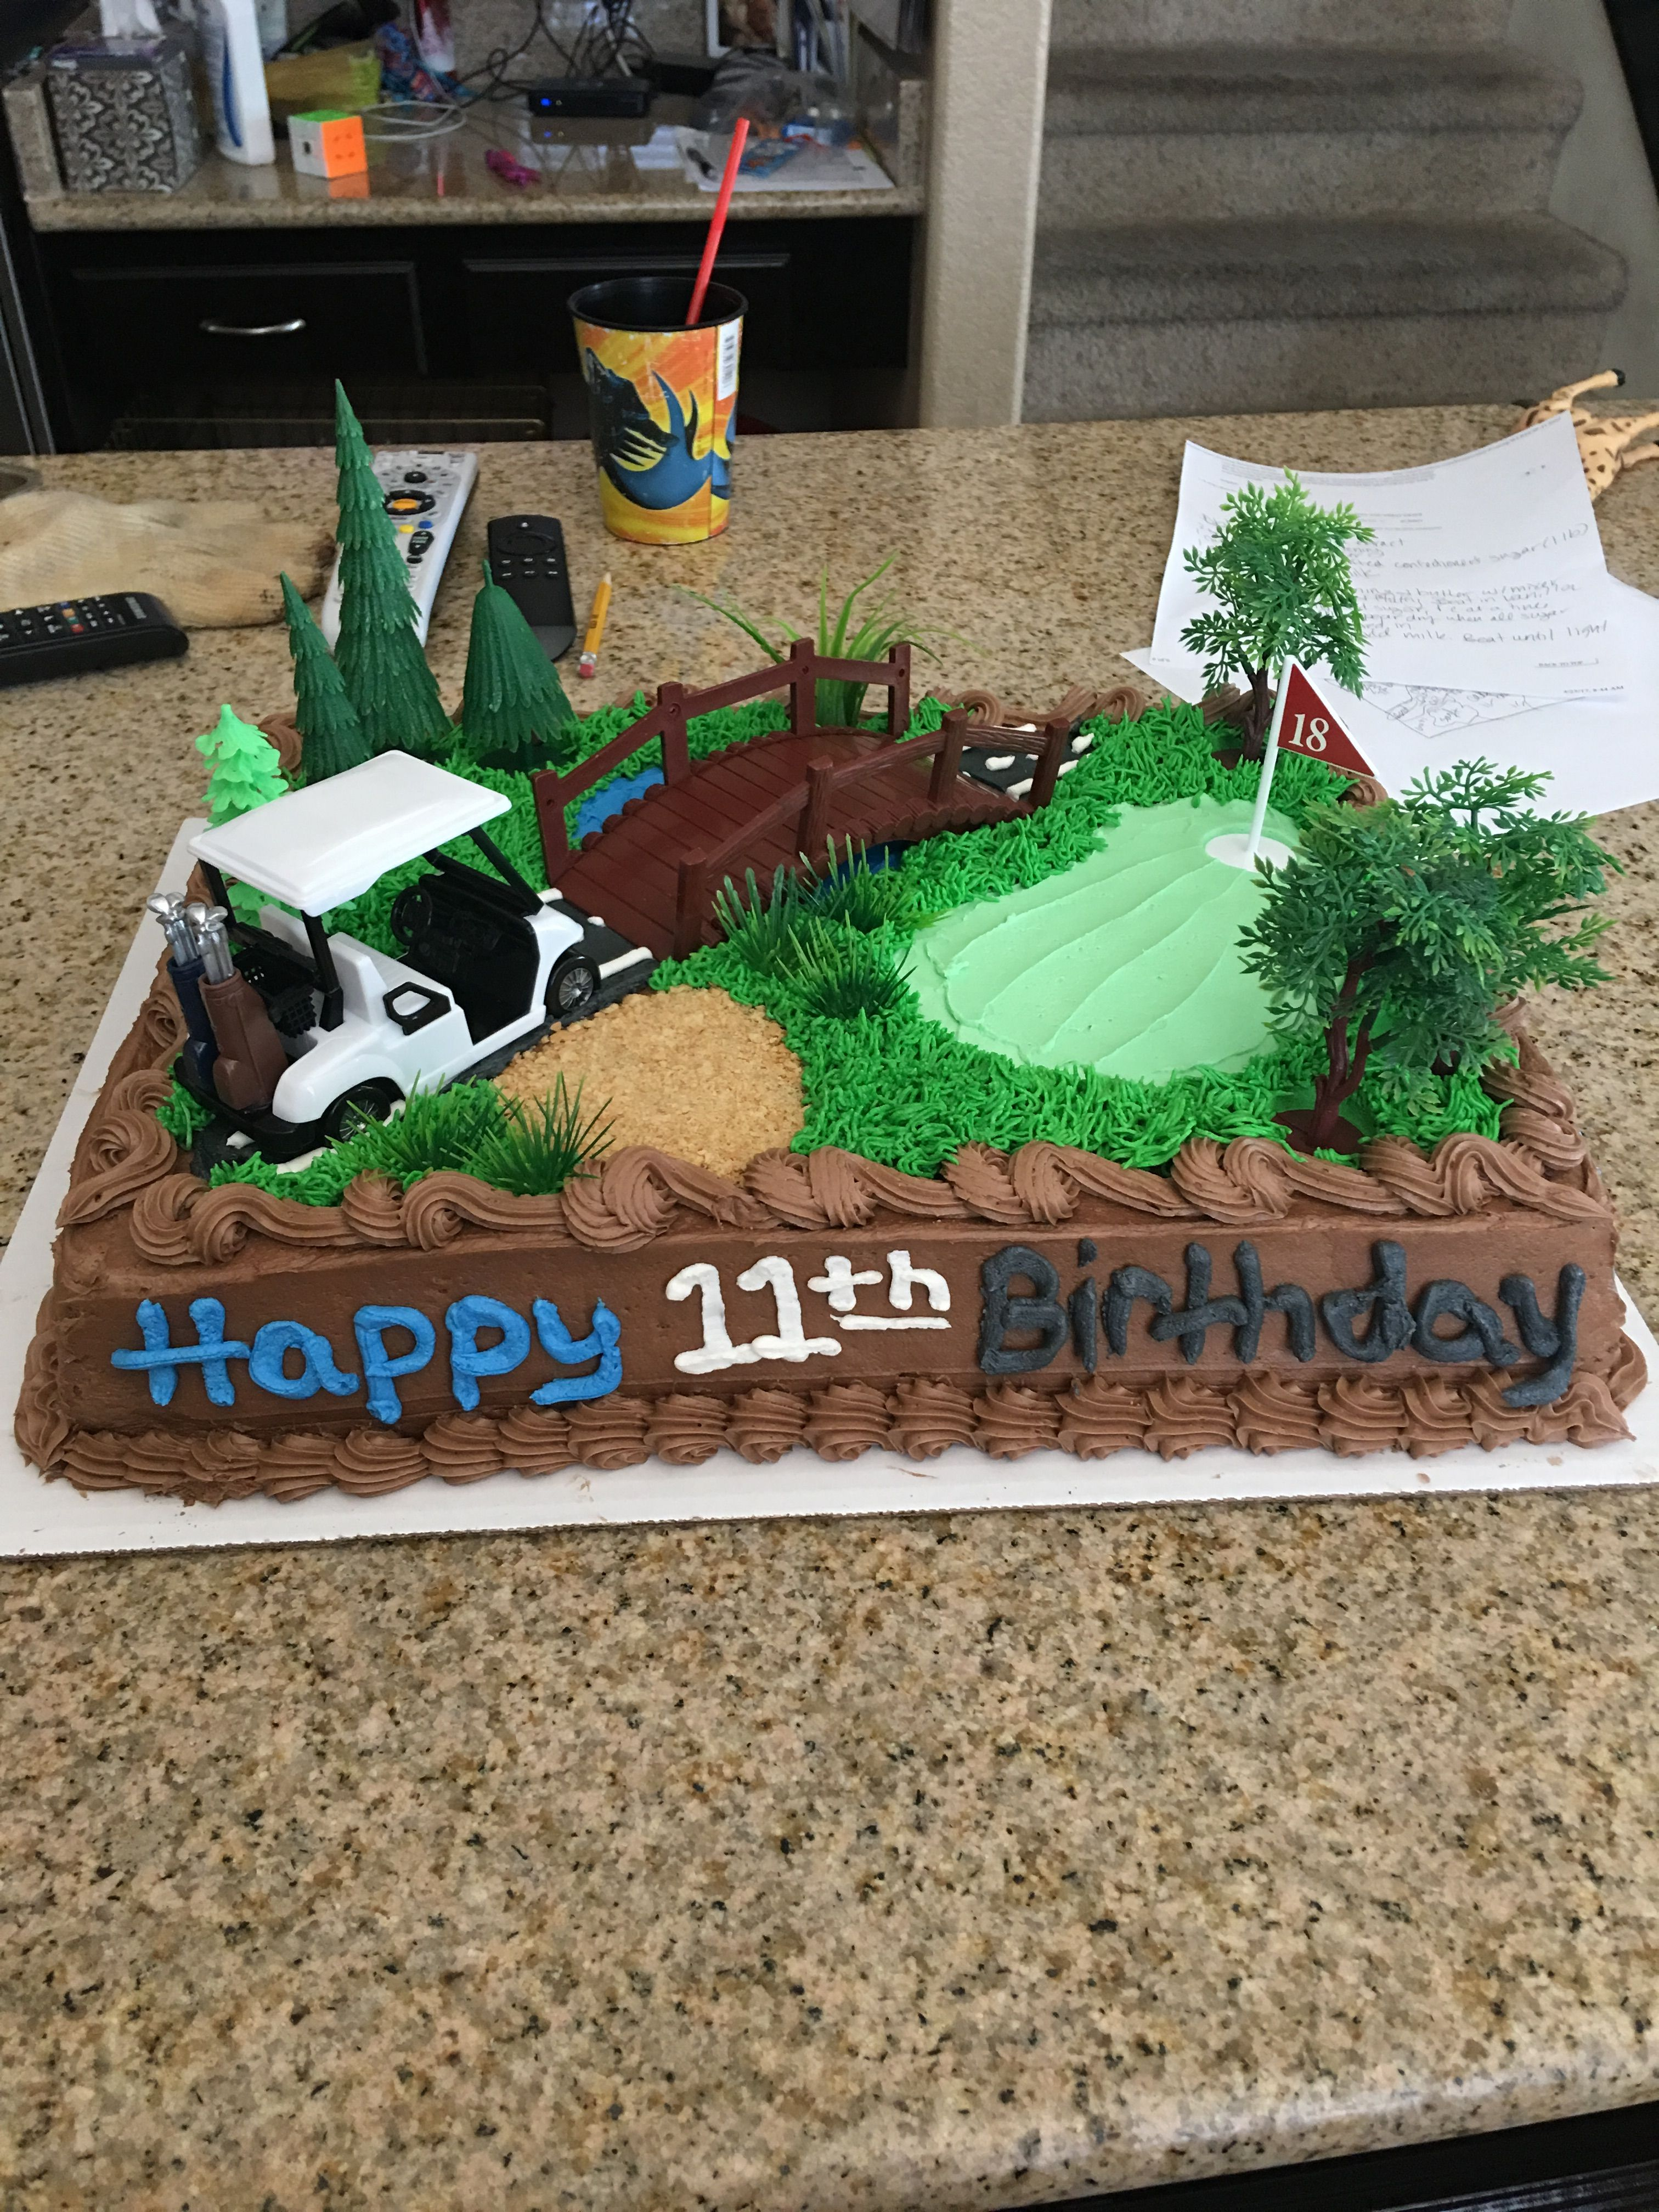 Costco Cake Ordered Plain Golf Toppers Grass Wilton Tip Graham Crackers For The Sand Pit